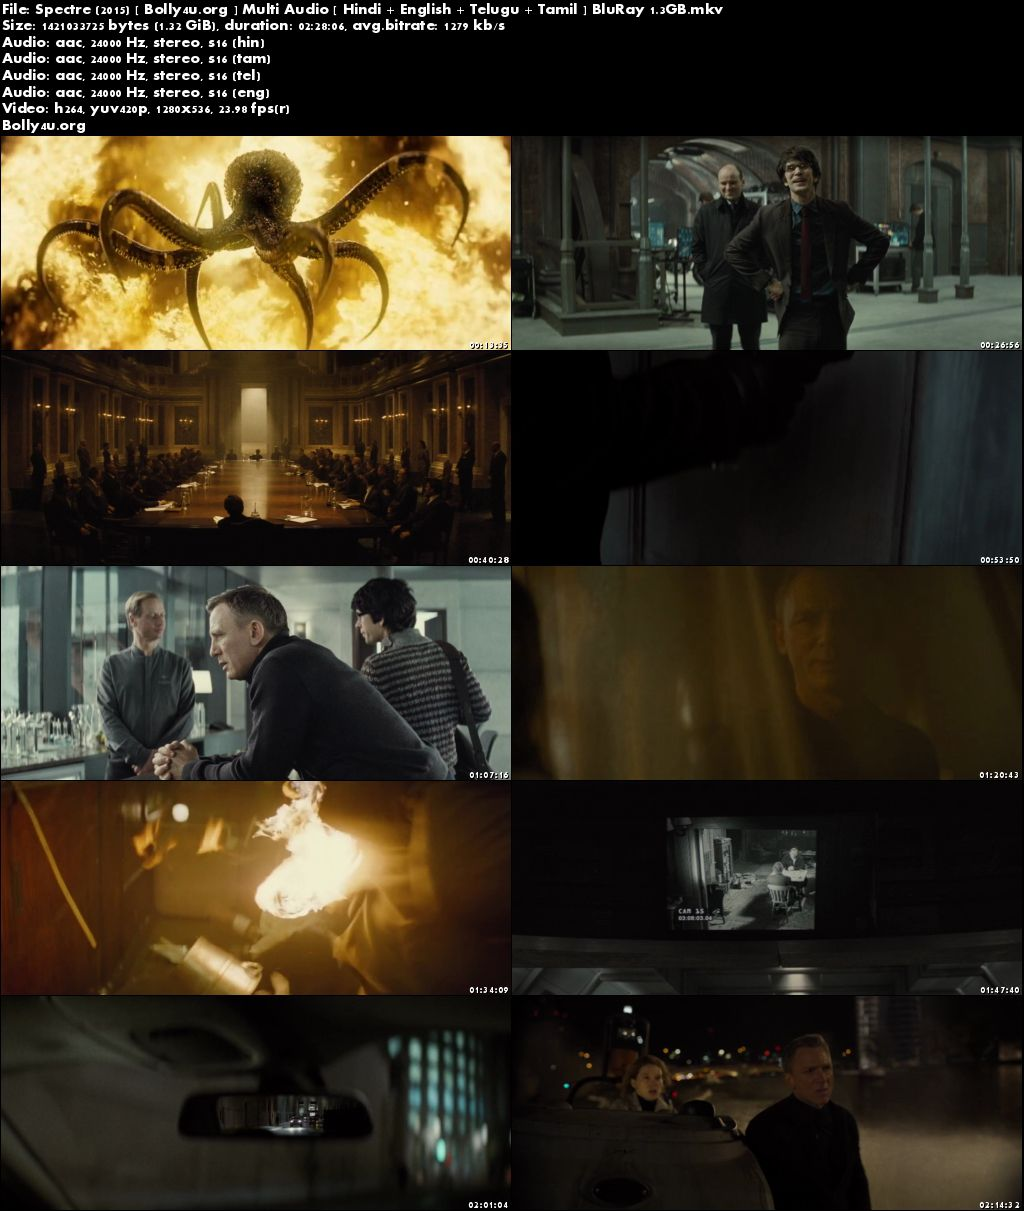 Spectre 2015 BluRay 720p Hindi Dubbed Multi Audio 720p Download